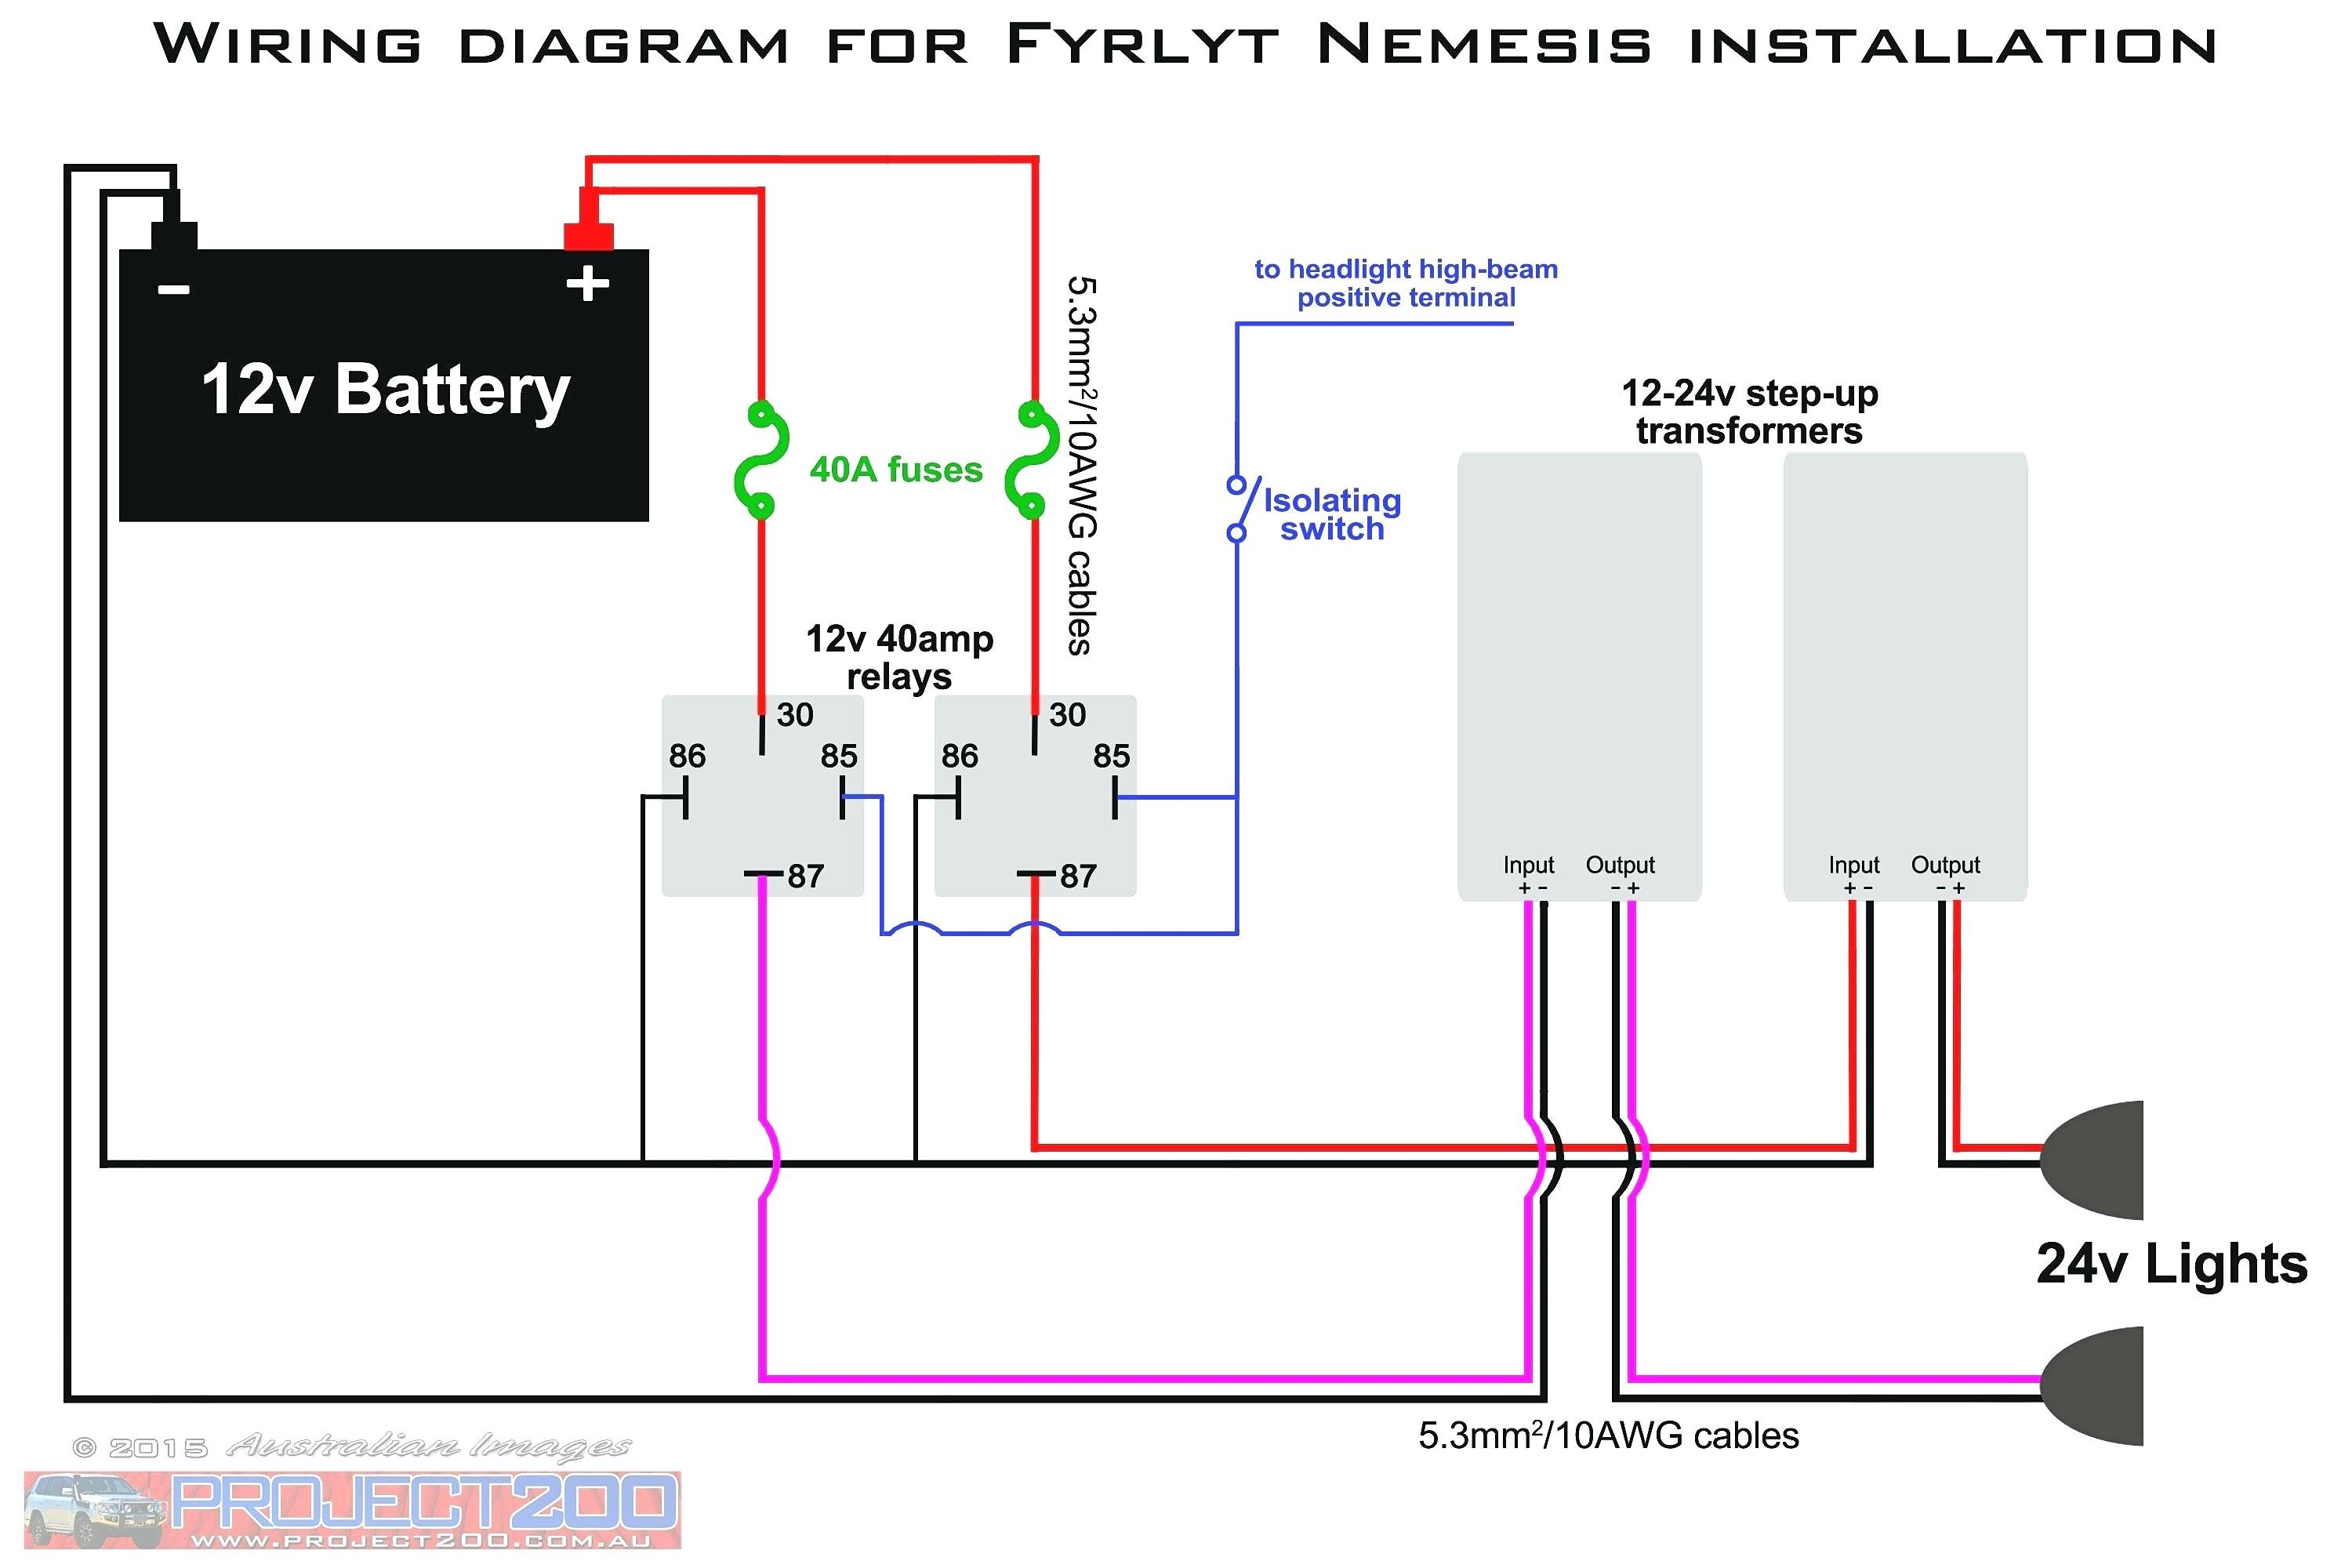 12v pool light wiring diagram Download-Wiring Diagram for Pool Light Transformer Fresh Pool Light Transformer Wiring Diagram 16-c